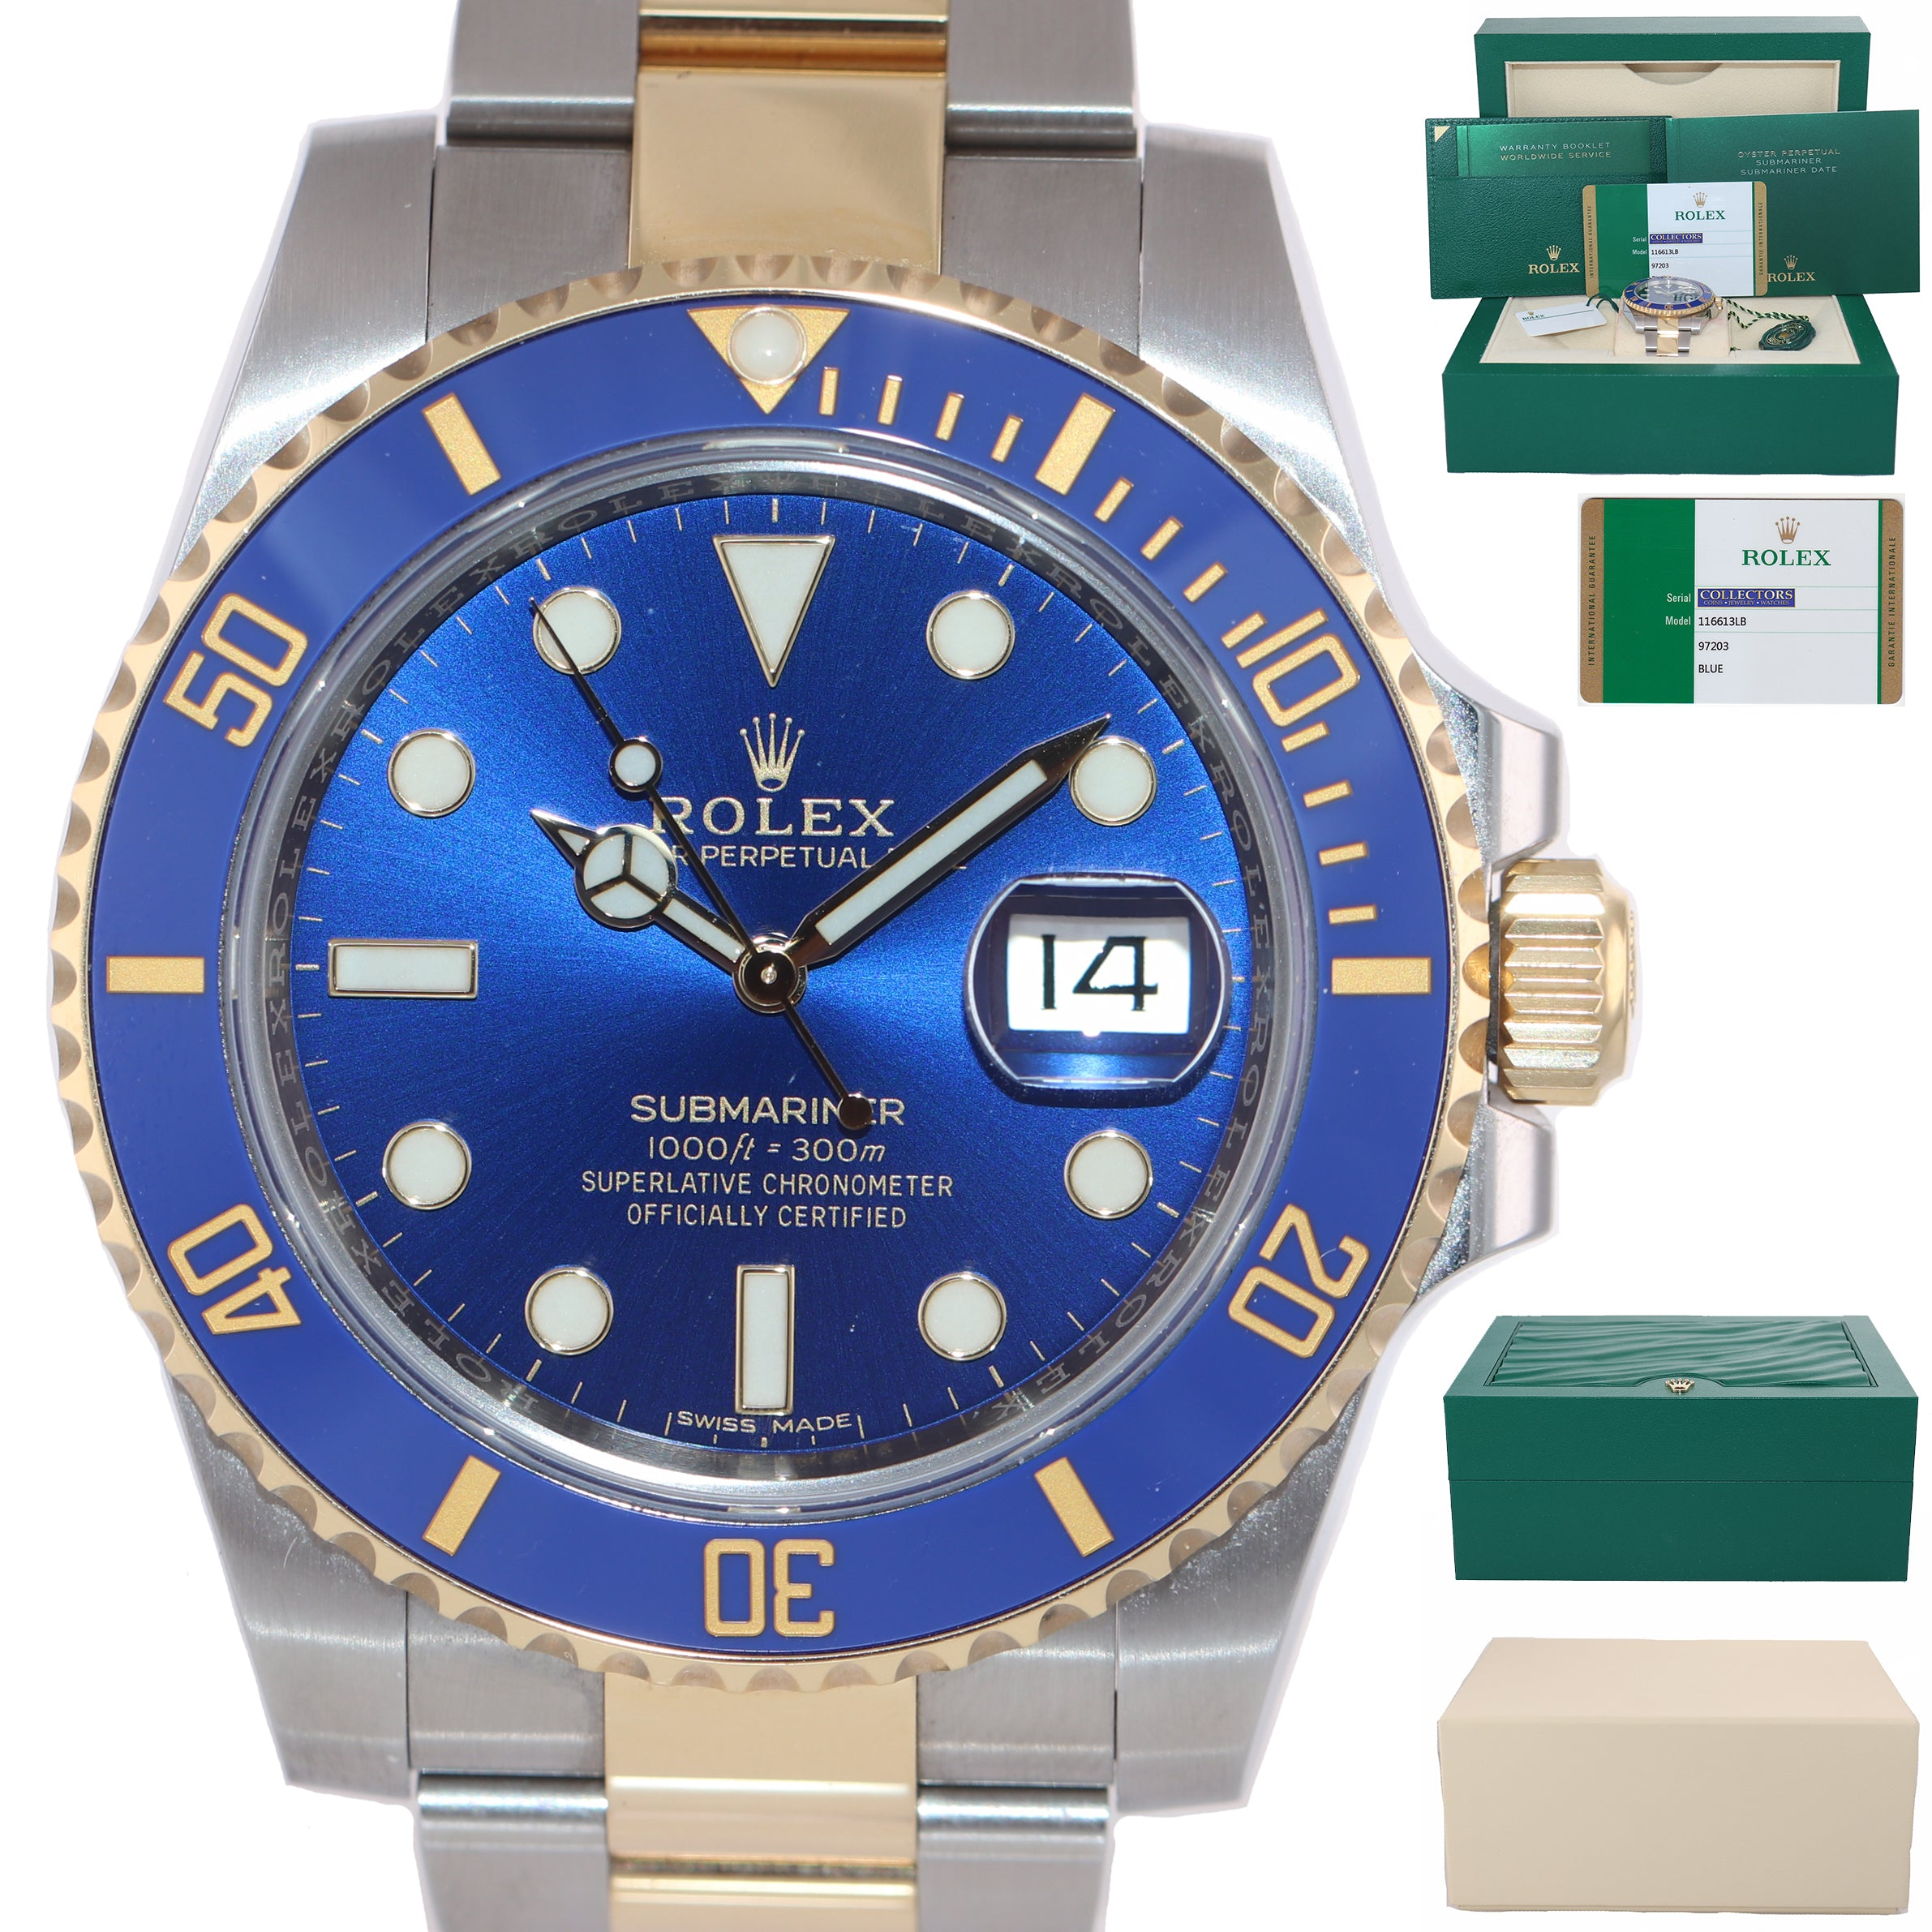 MINT 2018 BOX PAPERS Rolex Submariner Blue Ceramic 116613 Two Tone Gold Watch